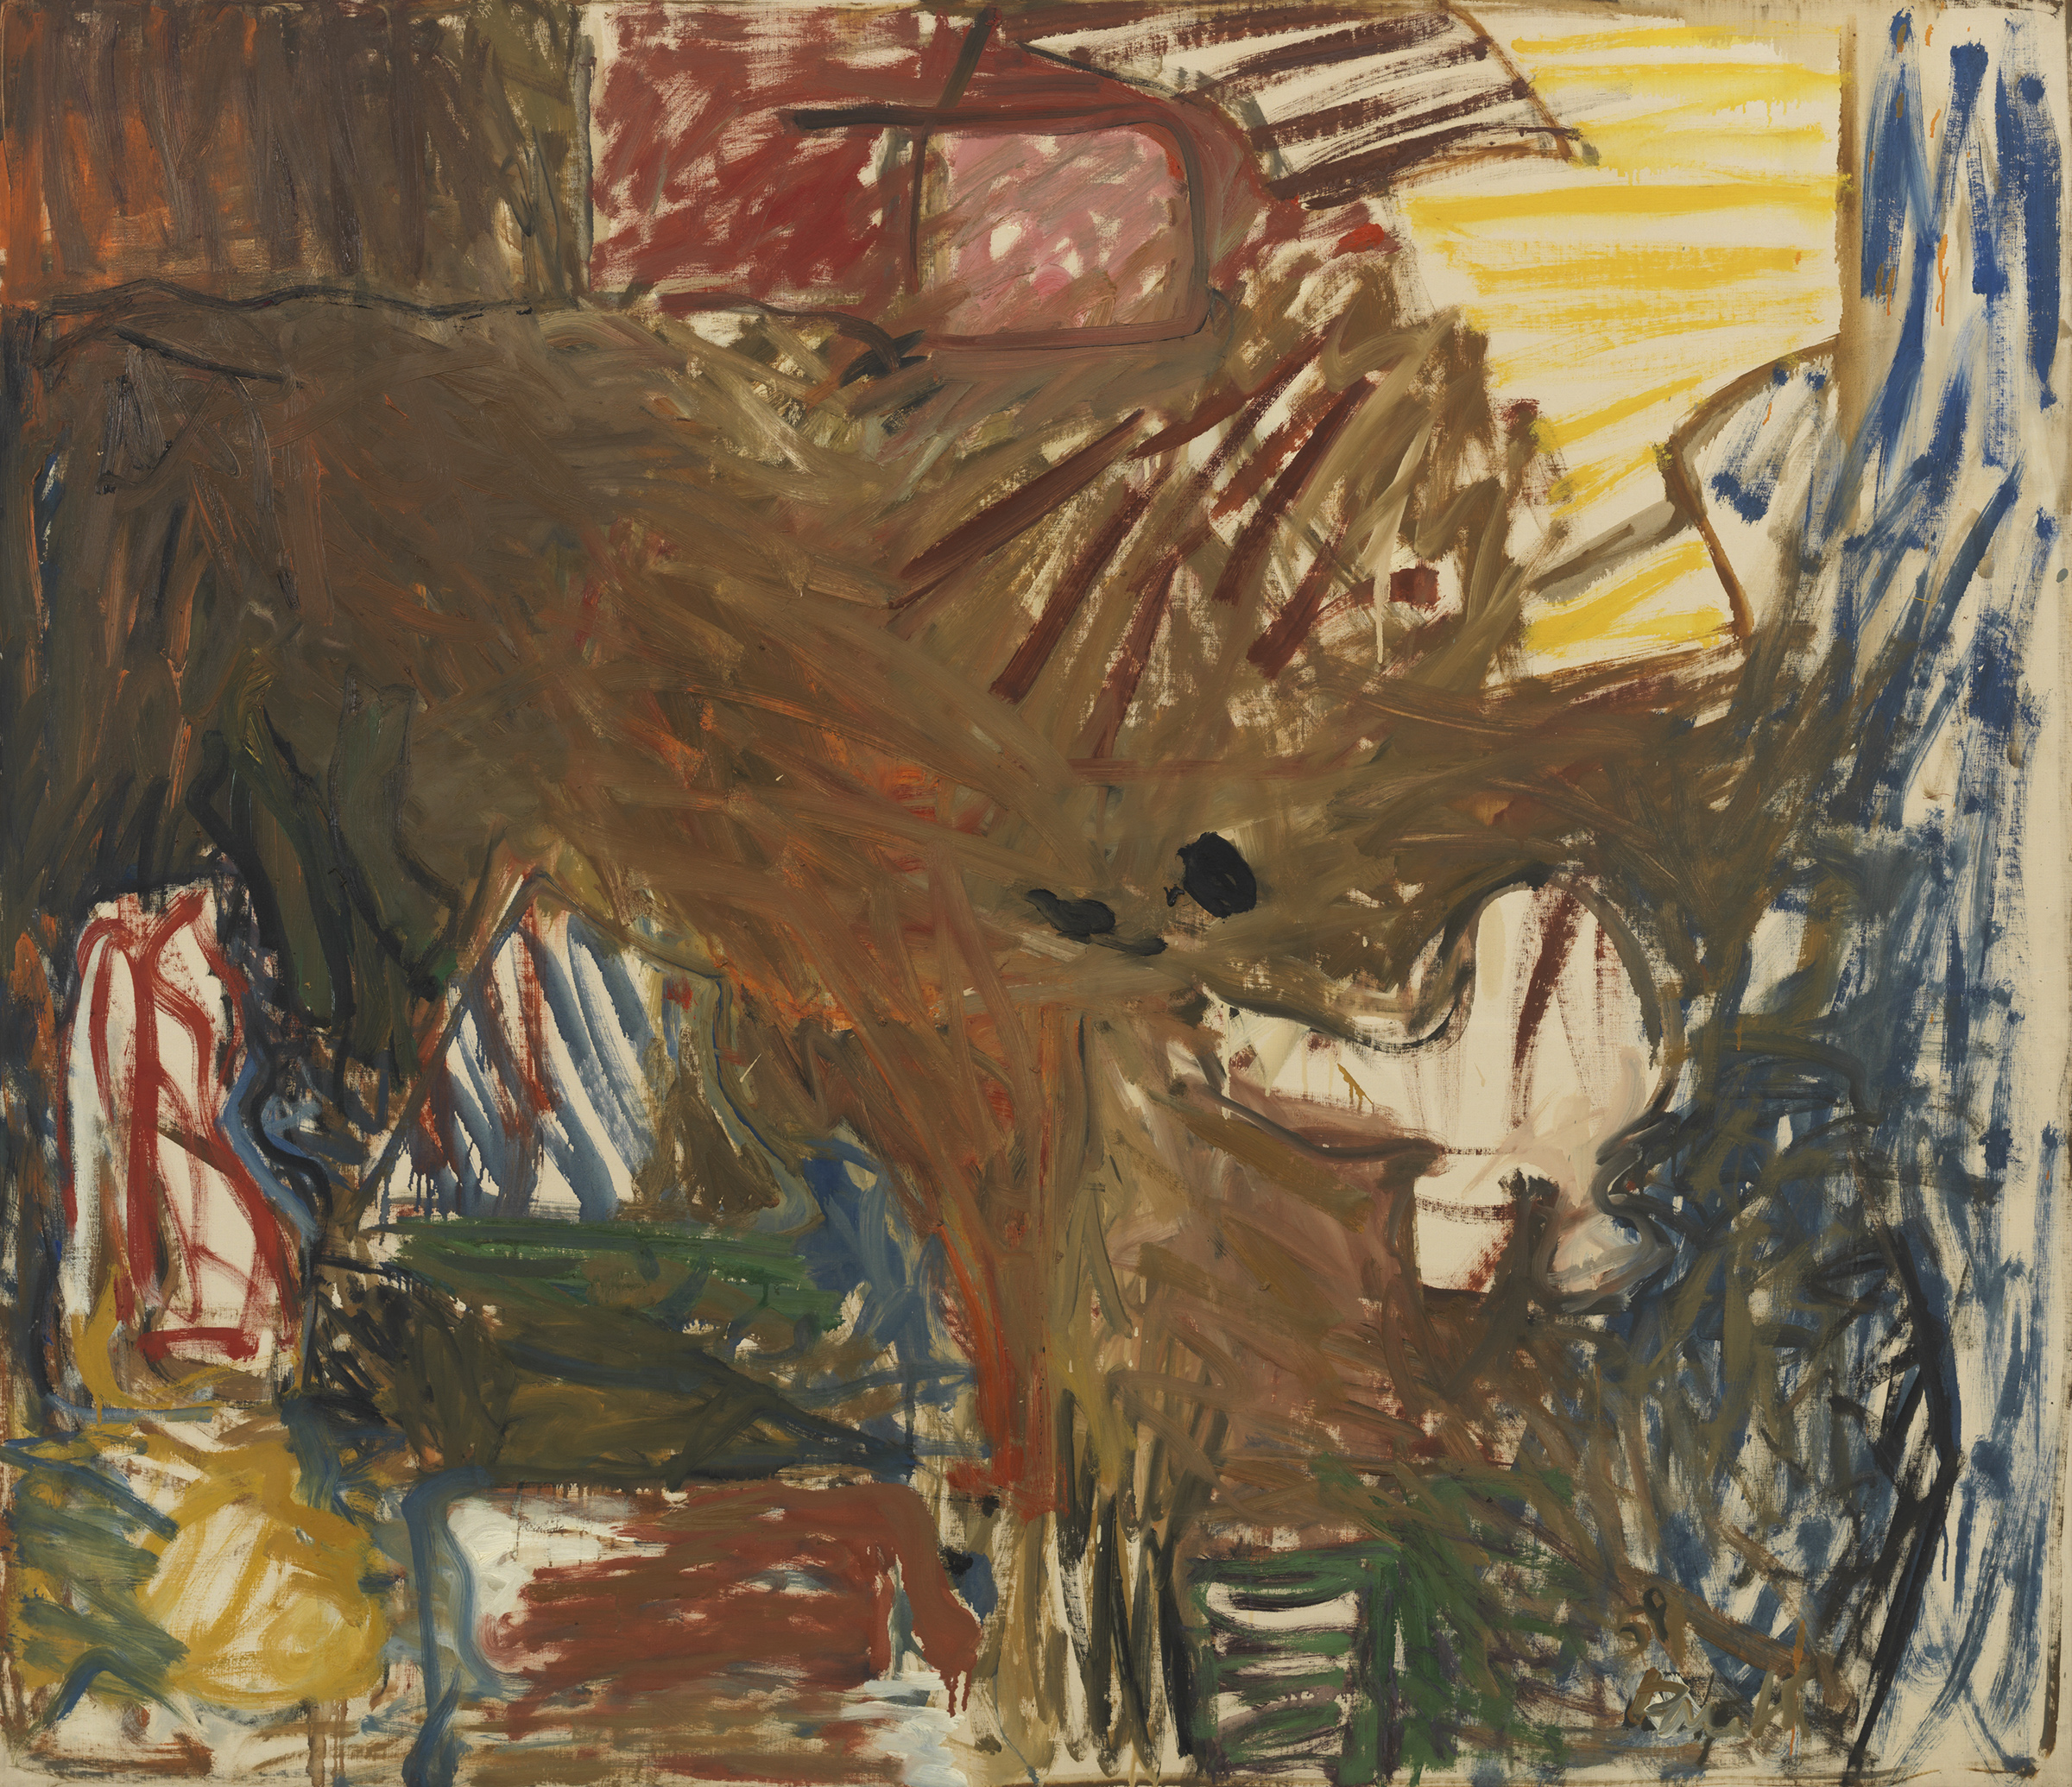 Pat Passlof  AS Brown , 1959 Oil on linen 50 x 58 inches